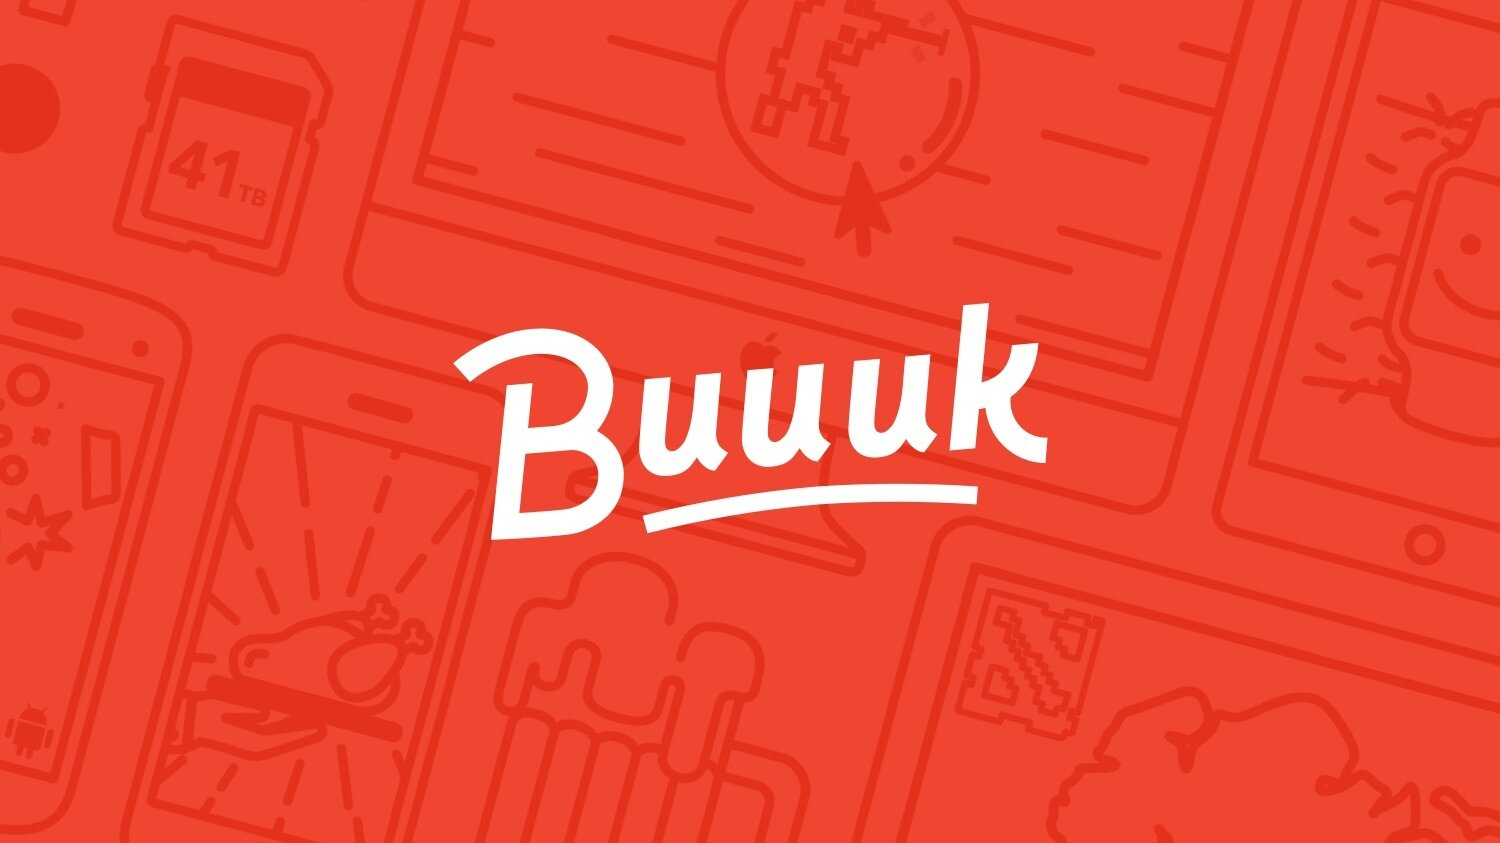 The New Buuuk Logo